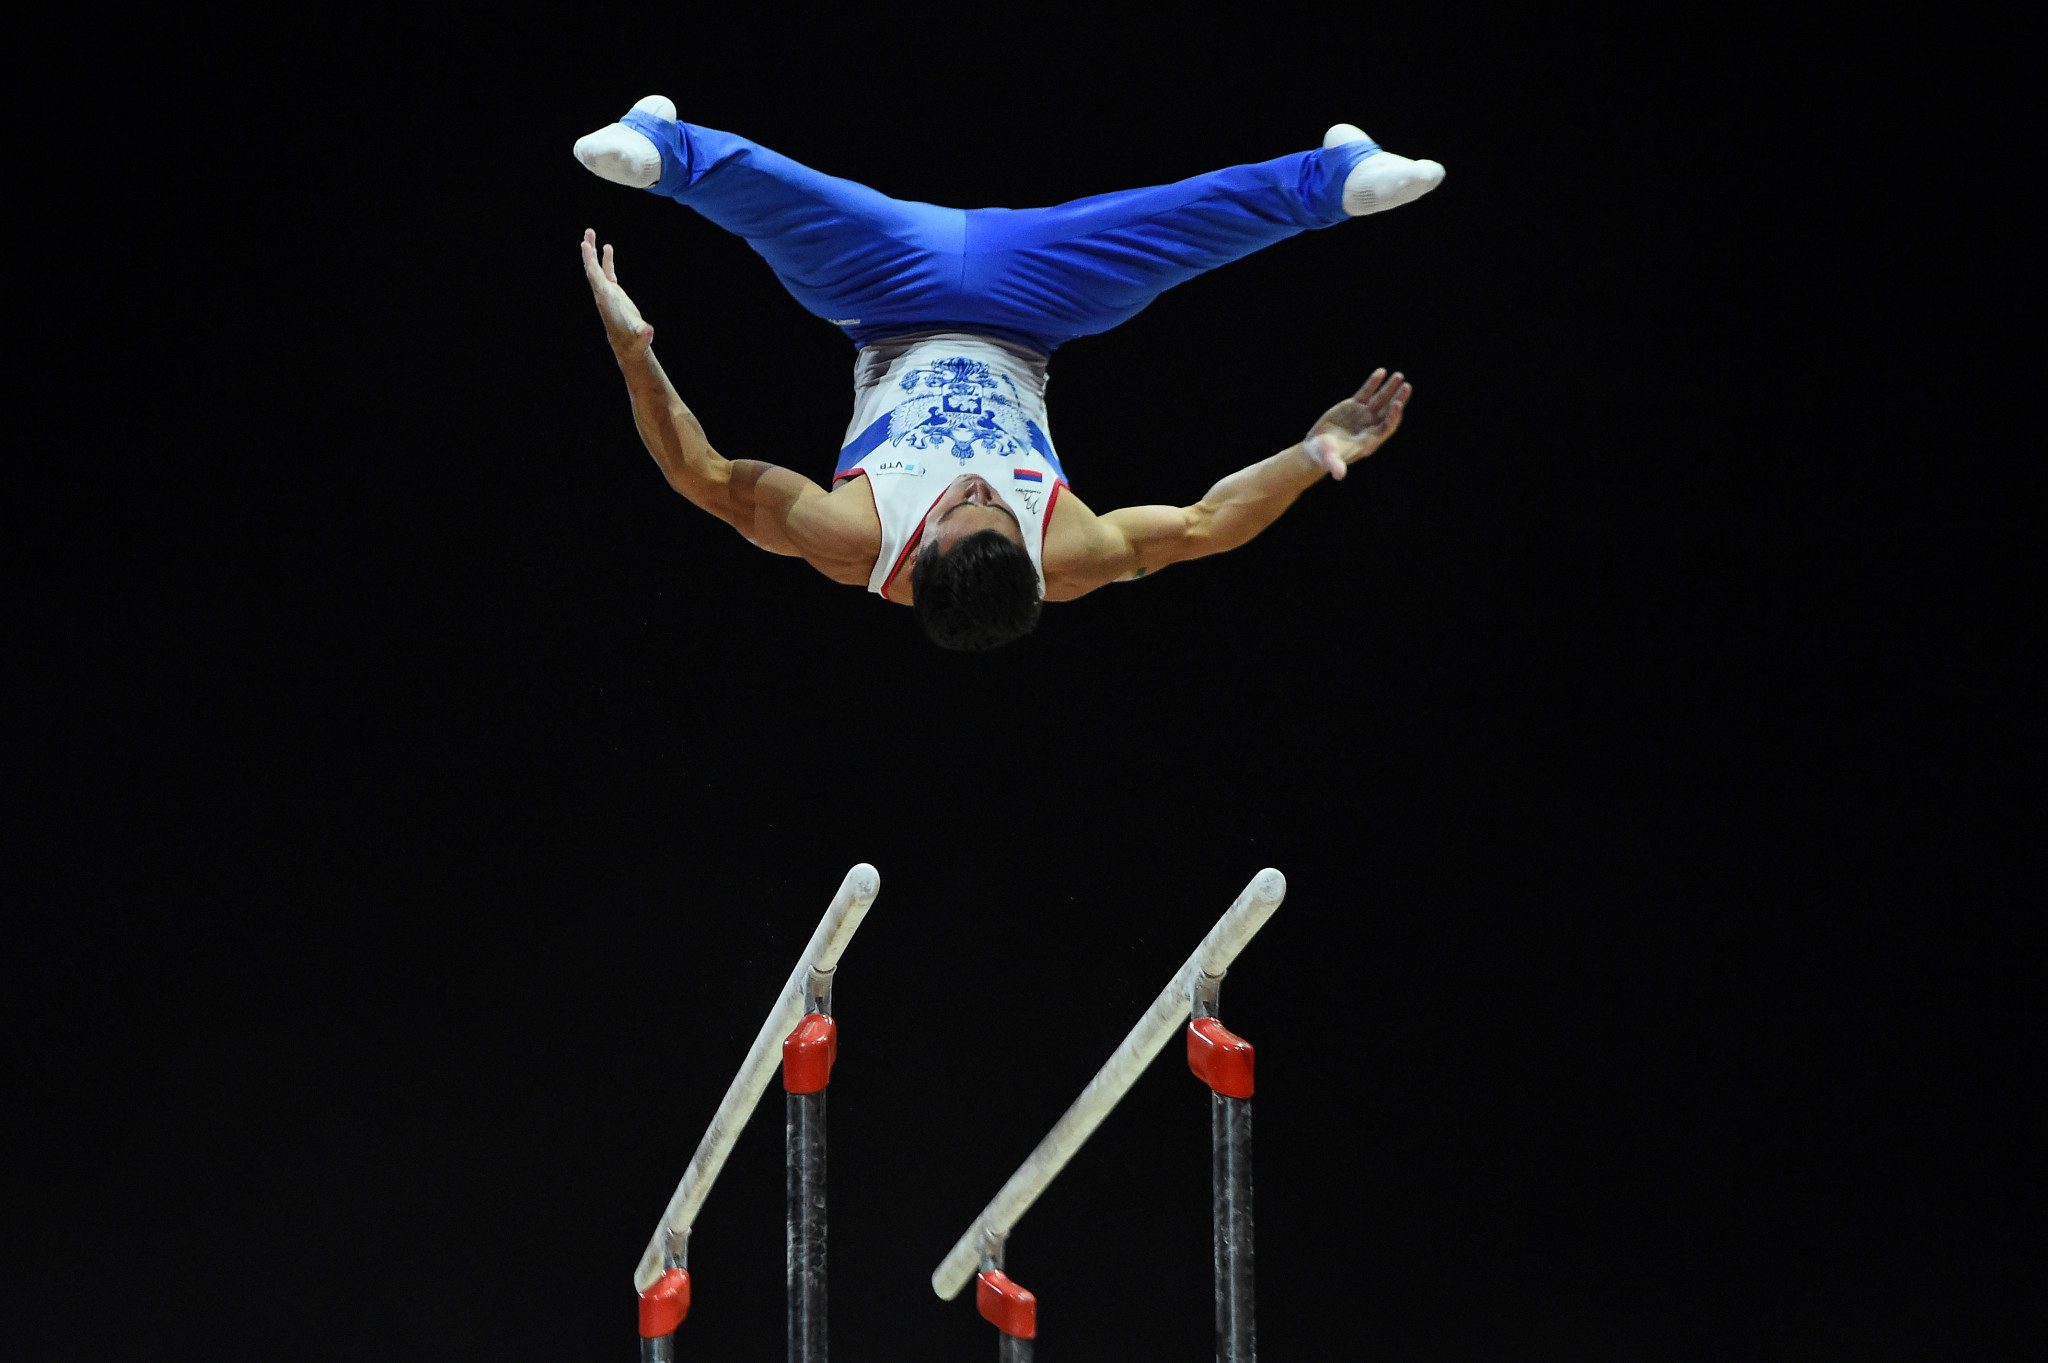 Before going onto clinch the men's parallel bars title ©Getty Images